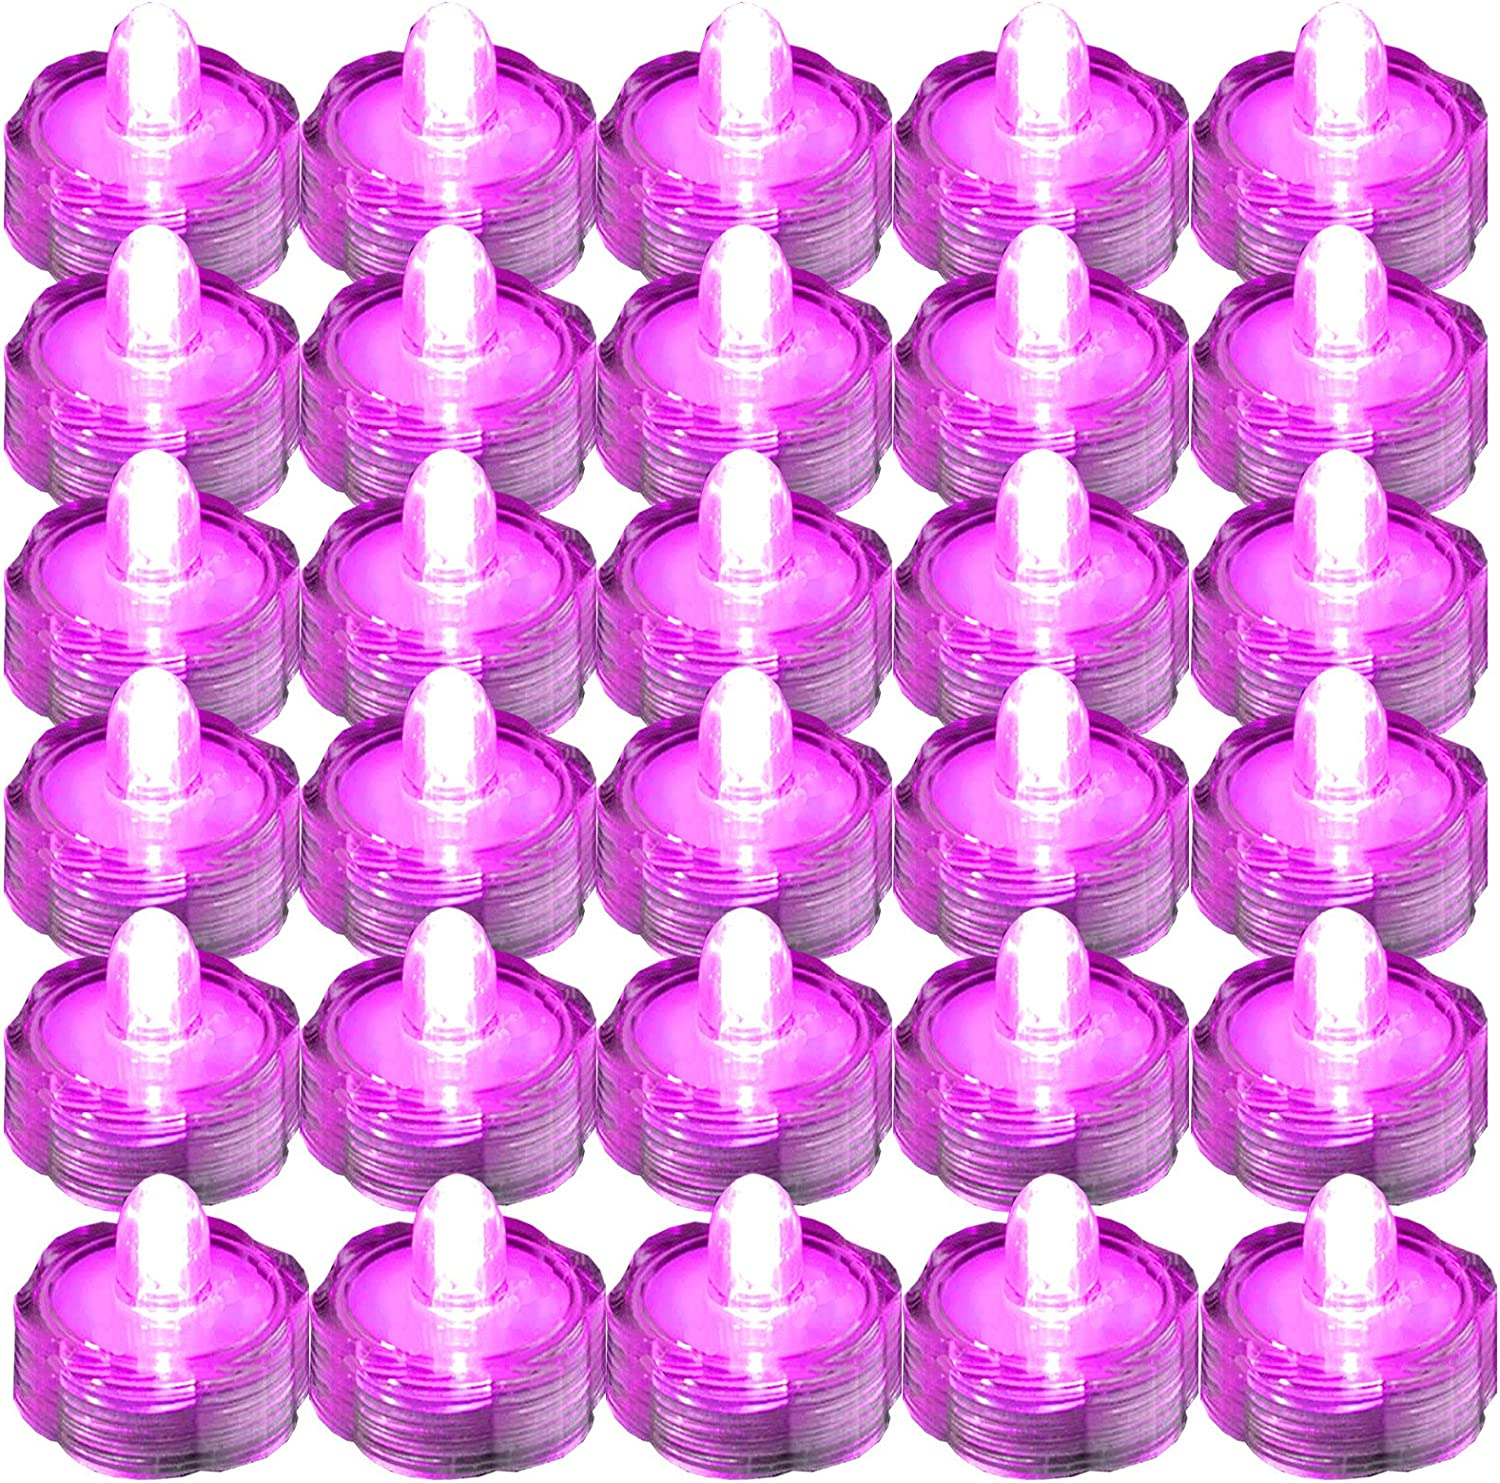 SUPER Bright LED Floral Tea Light Submersible Lights For Party Wedding (Pink, 30 Pack)